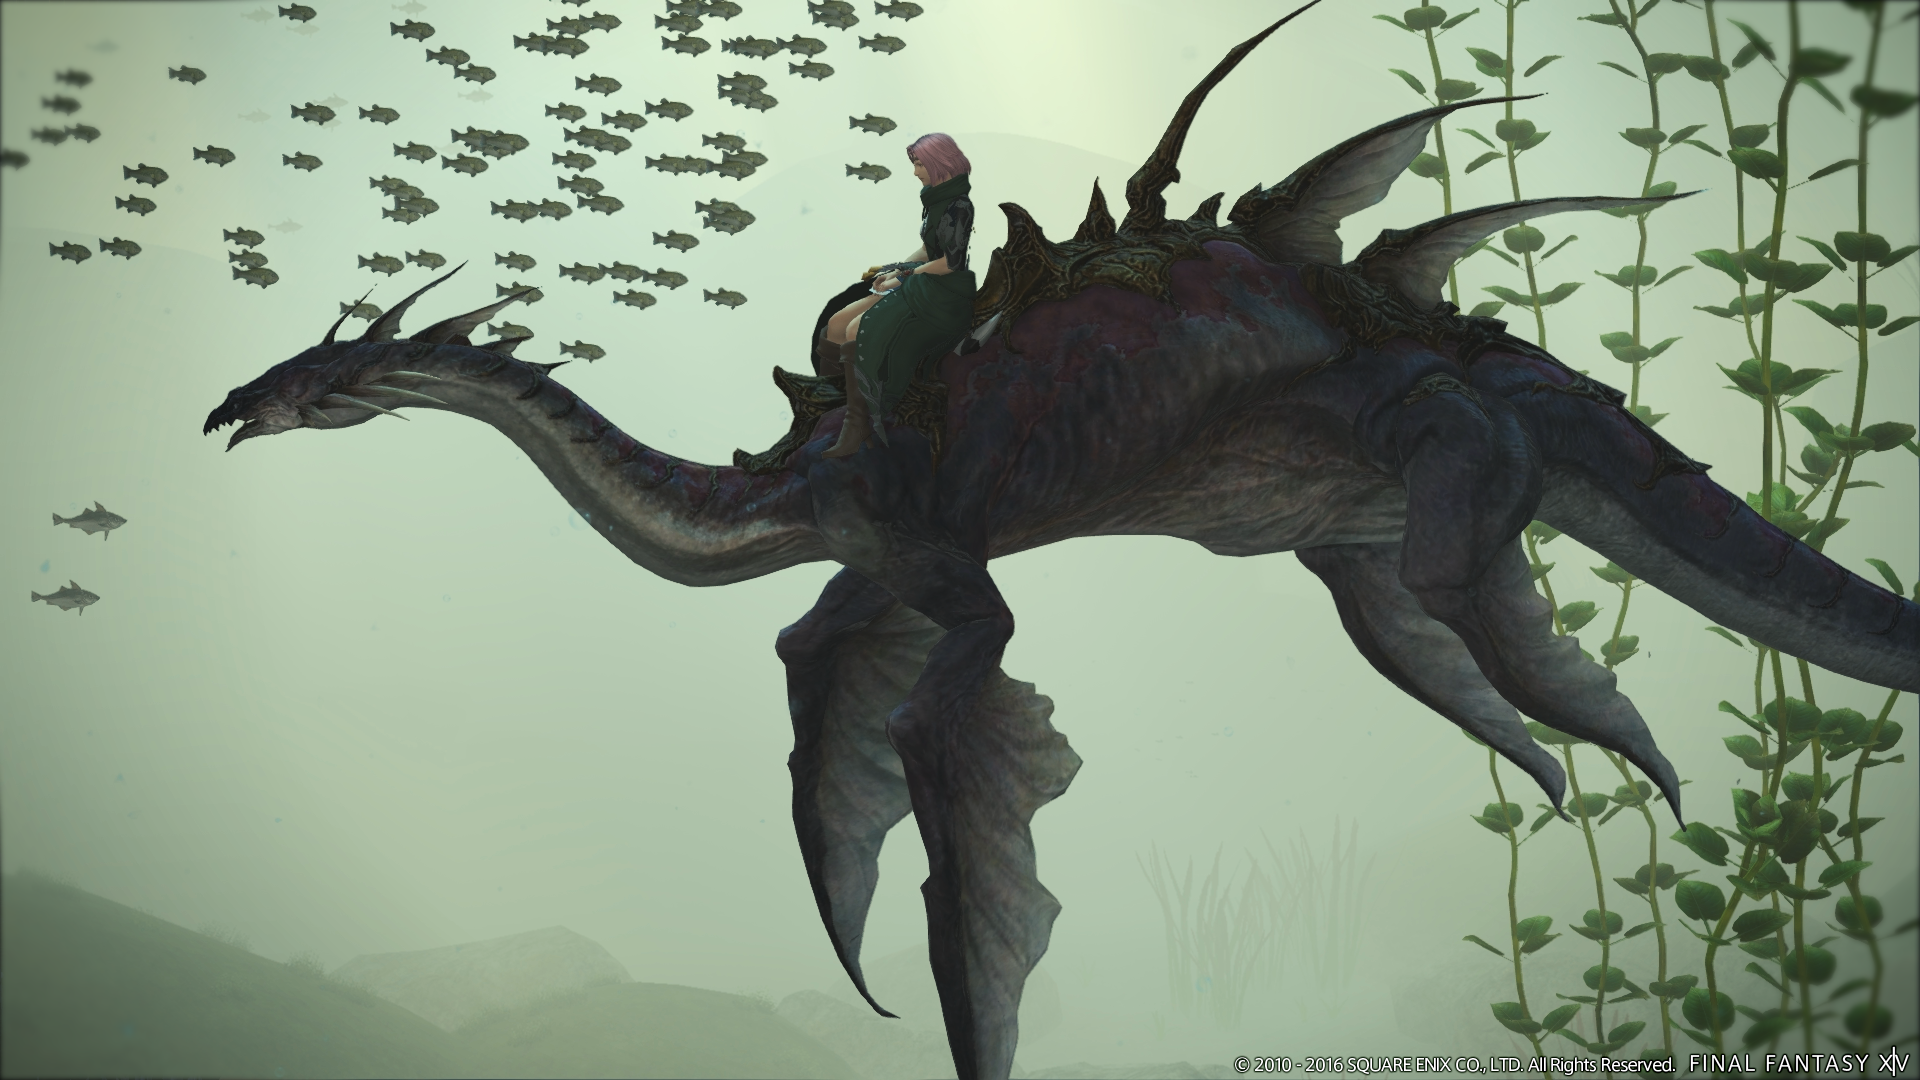 Final Fantasy XIV's Stormblood expansion will release in June | RPG Site